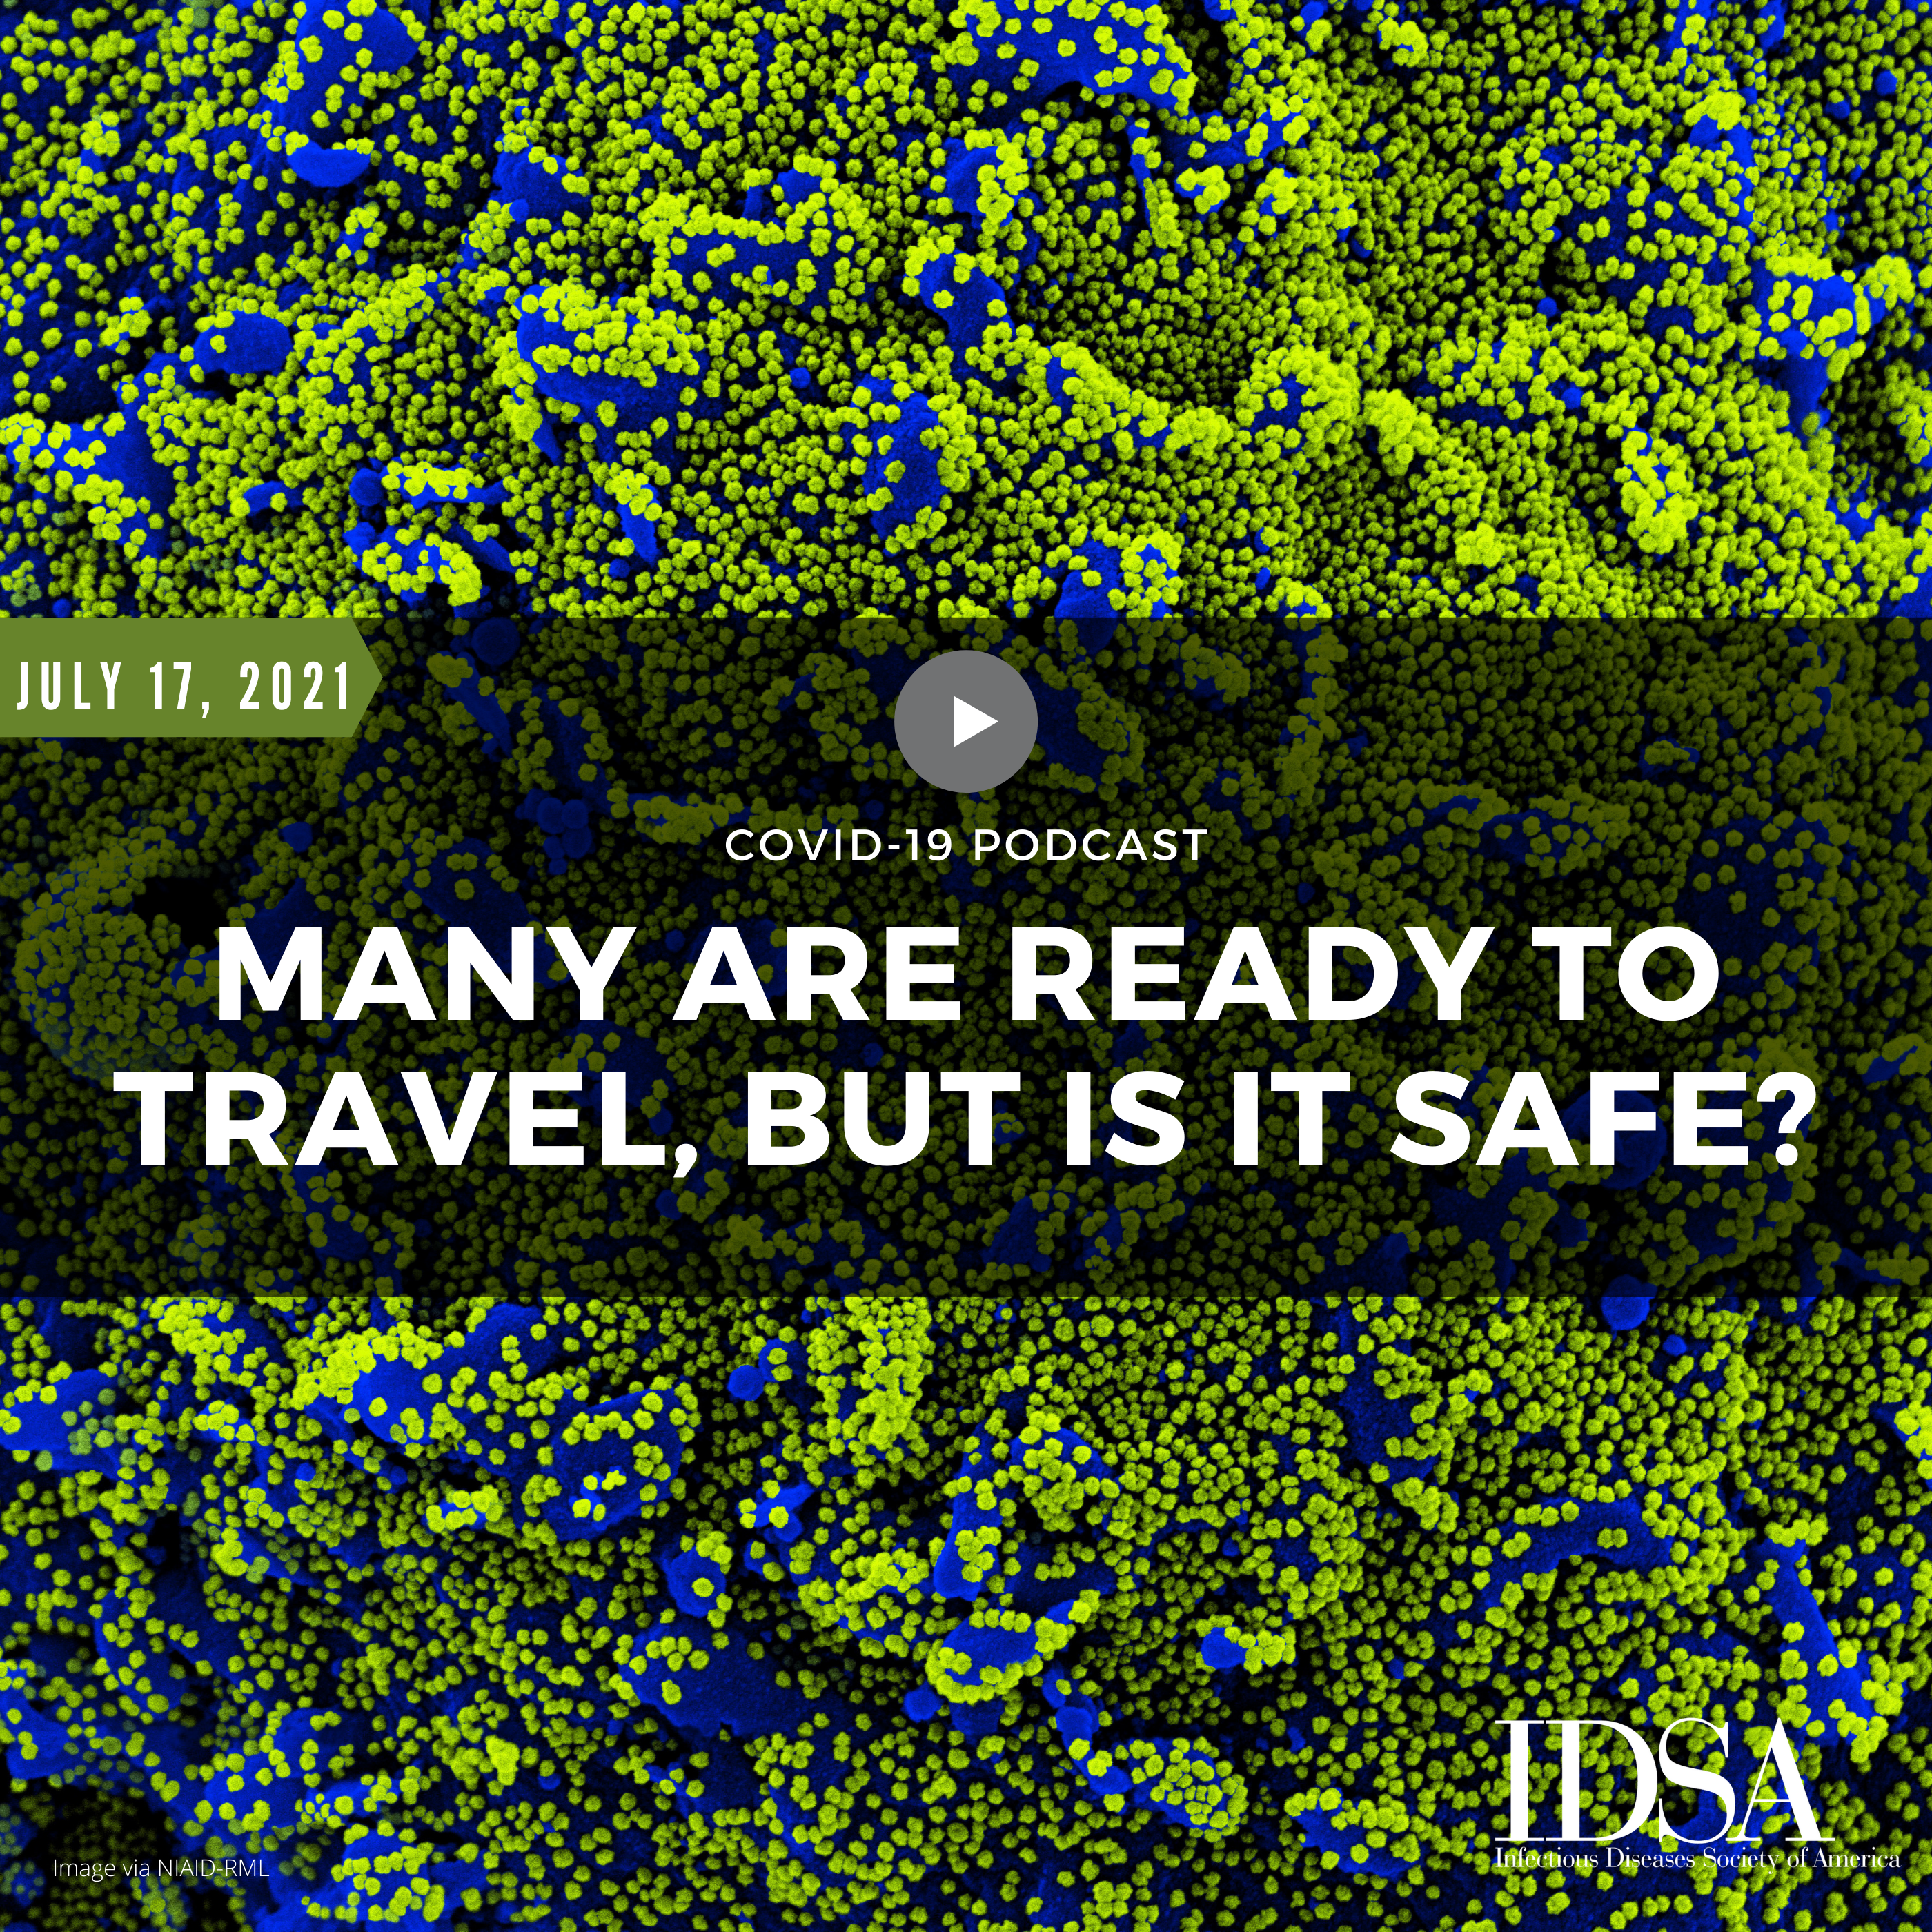 Many Are Ready To Travel, But Is It Safe? (July 17, 2021)